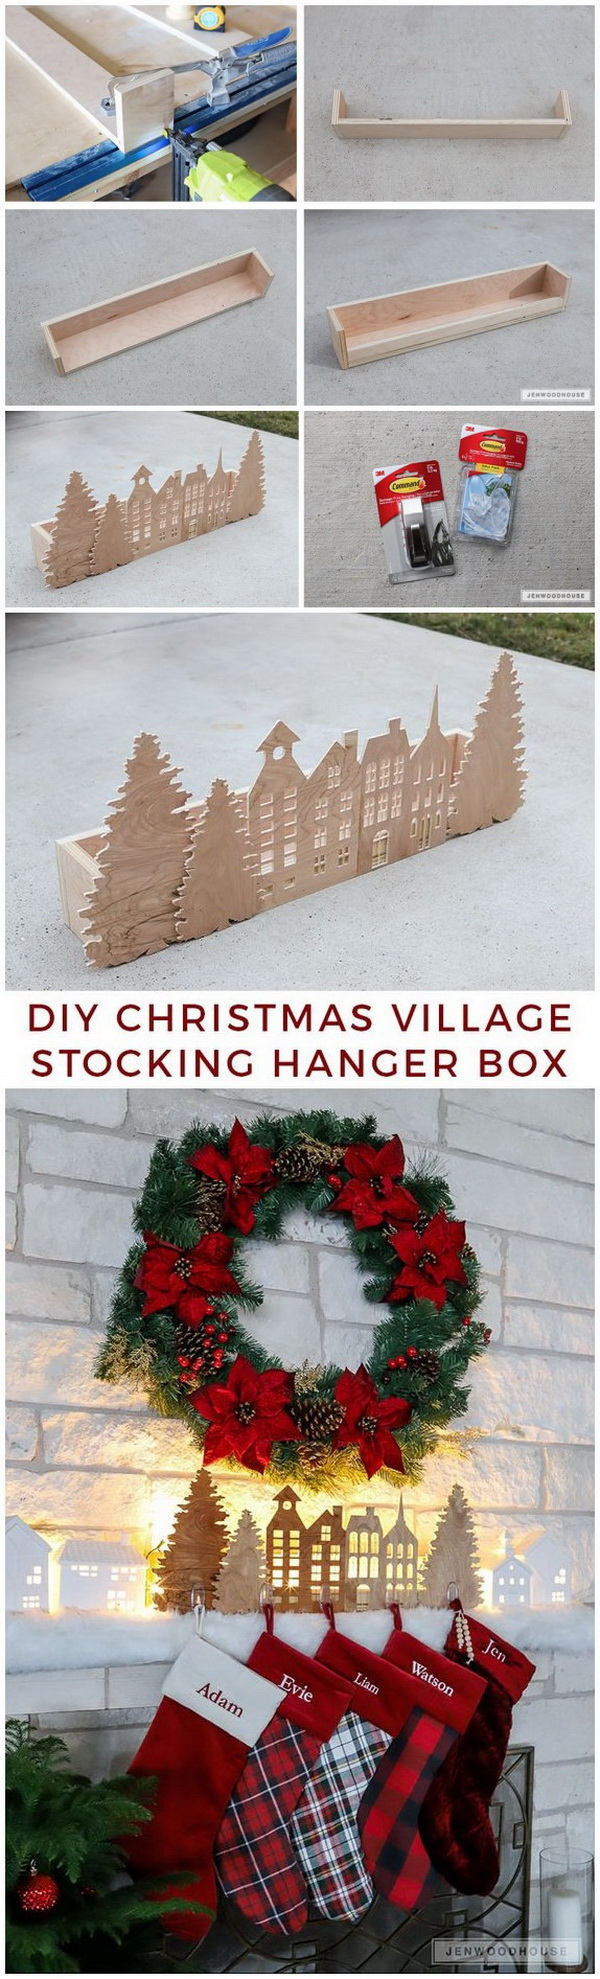 Christmas Village Stocking Hanger Box.